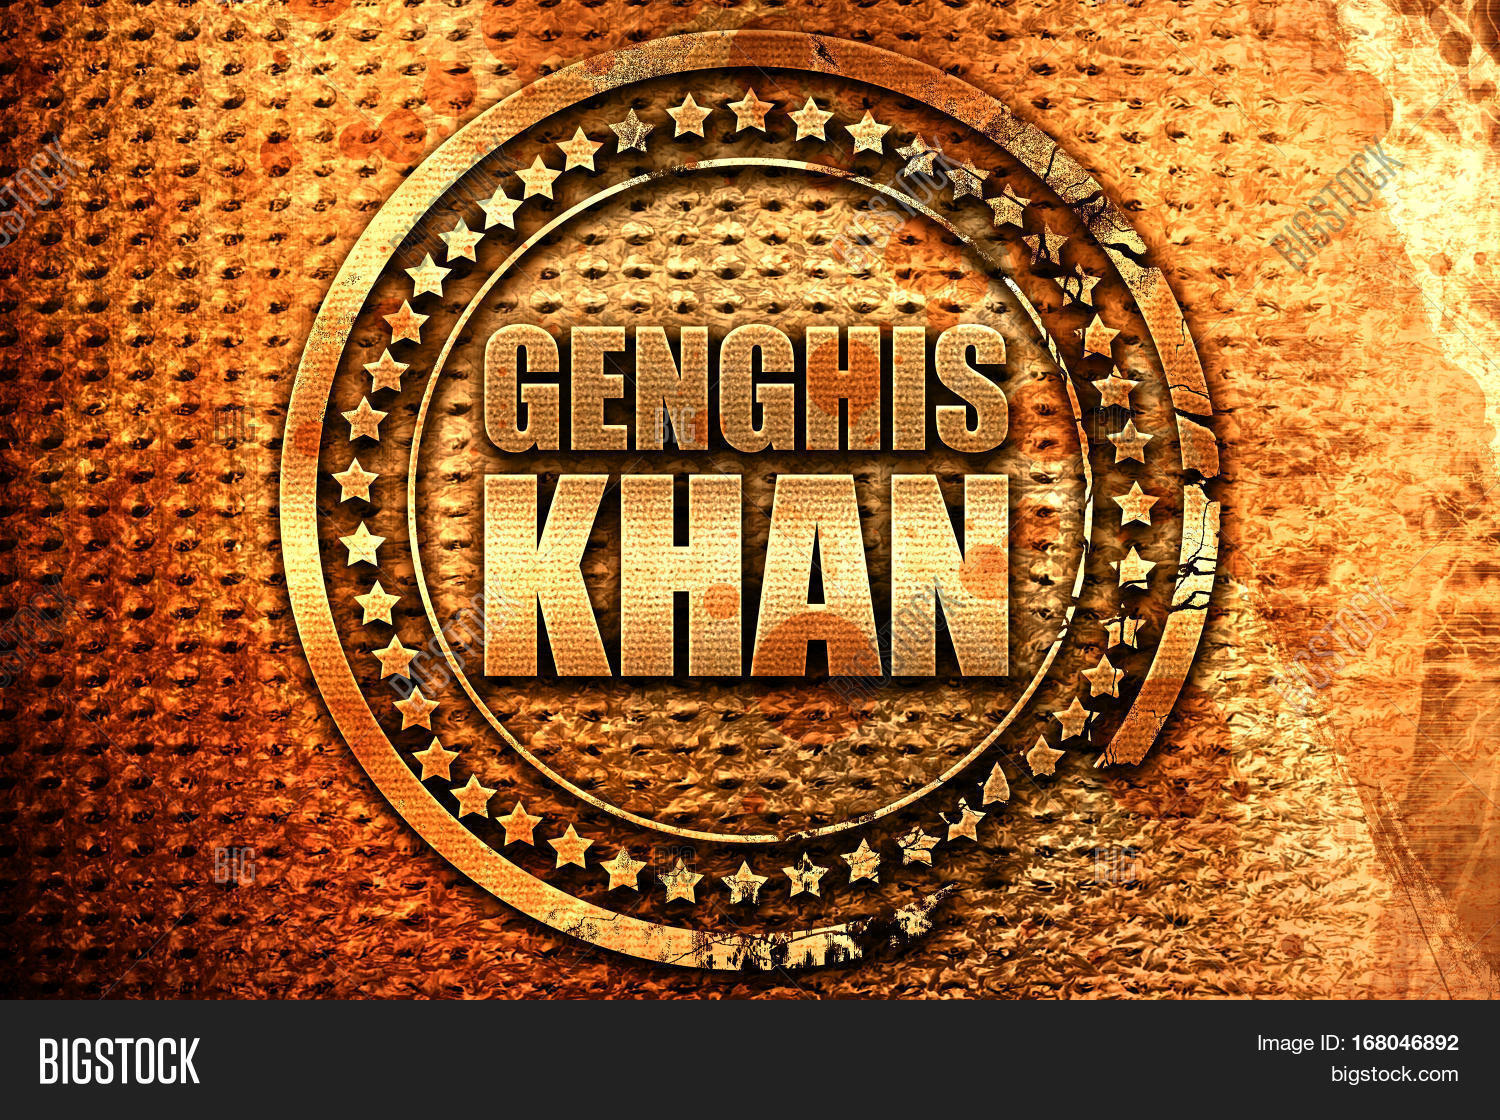 Genghis Khan 3d Image Photo Free Trial Bigstock